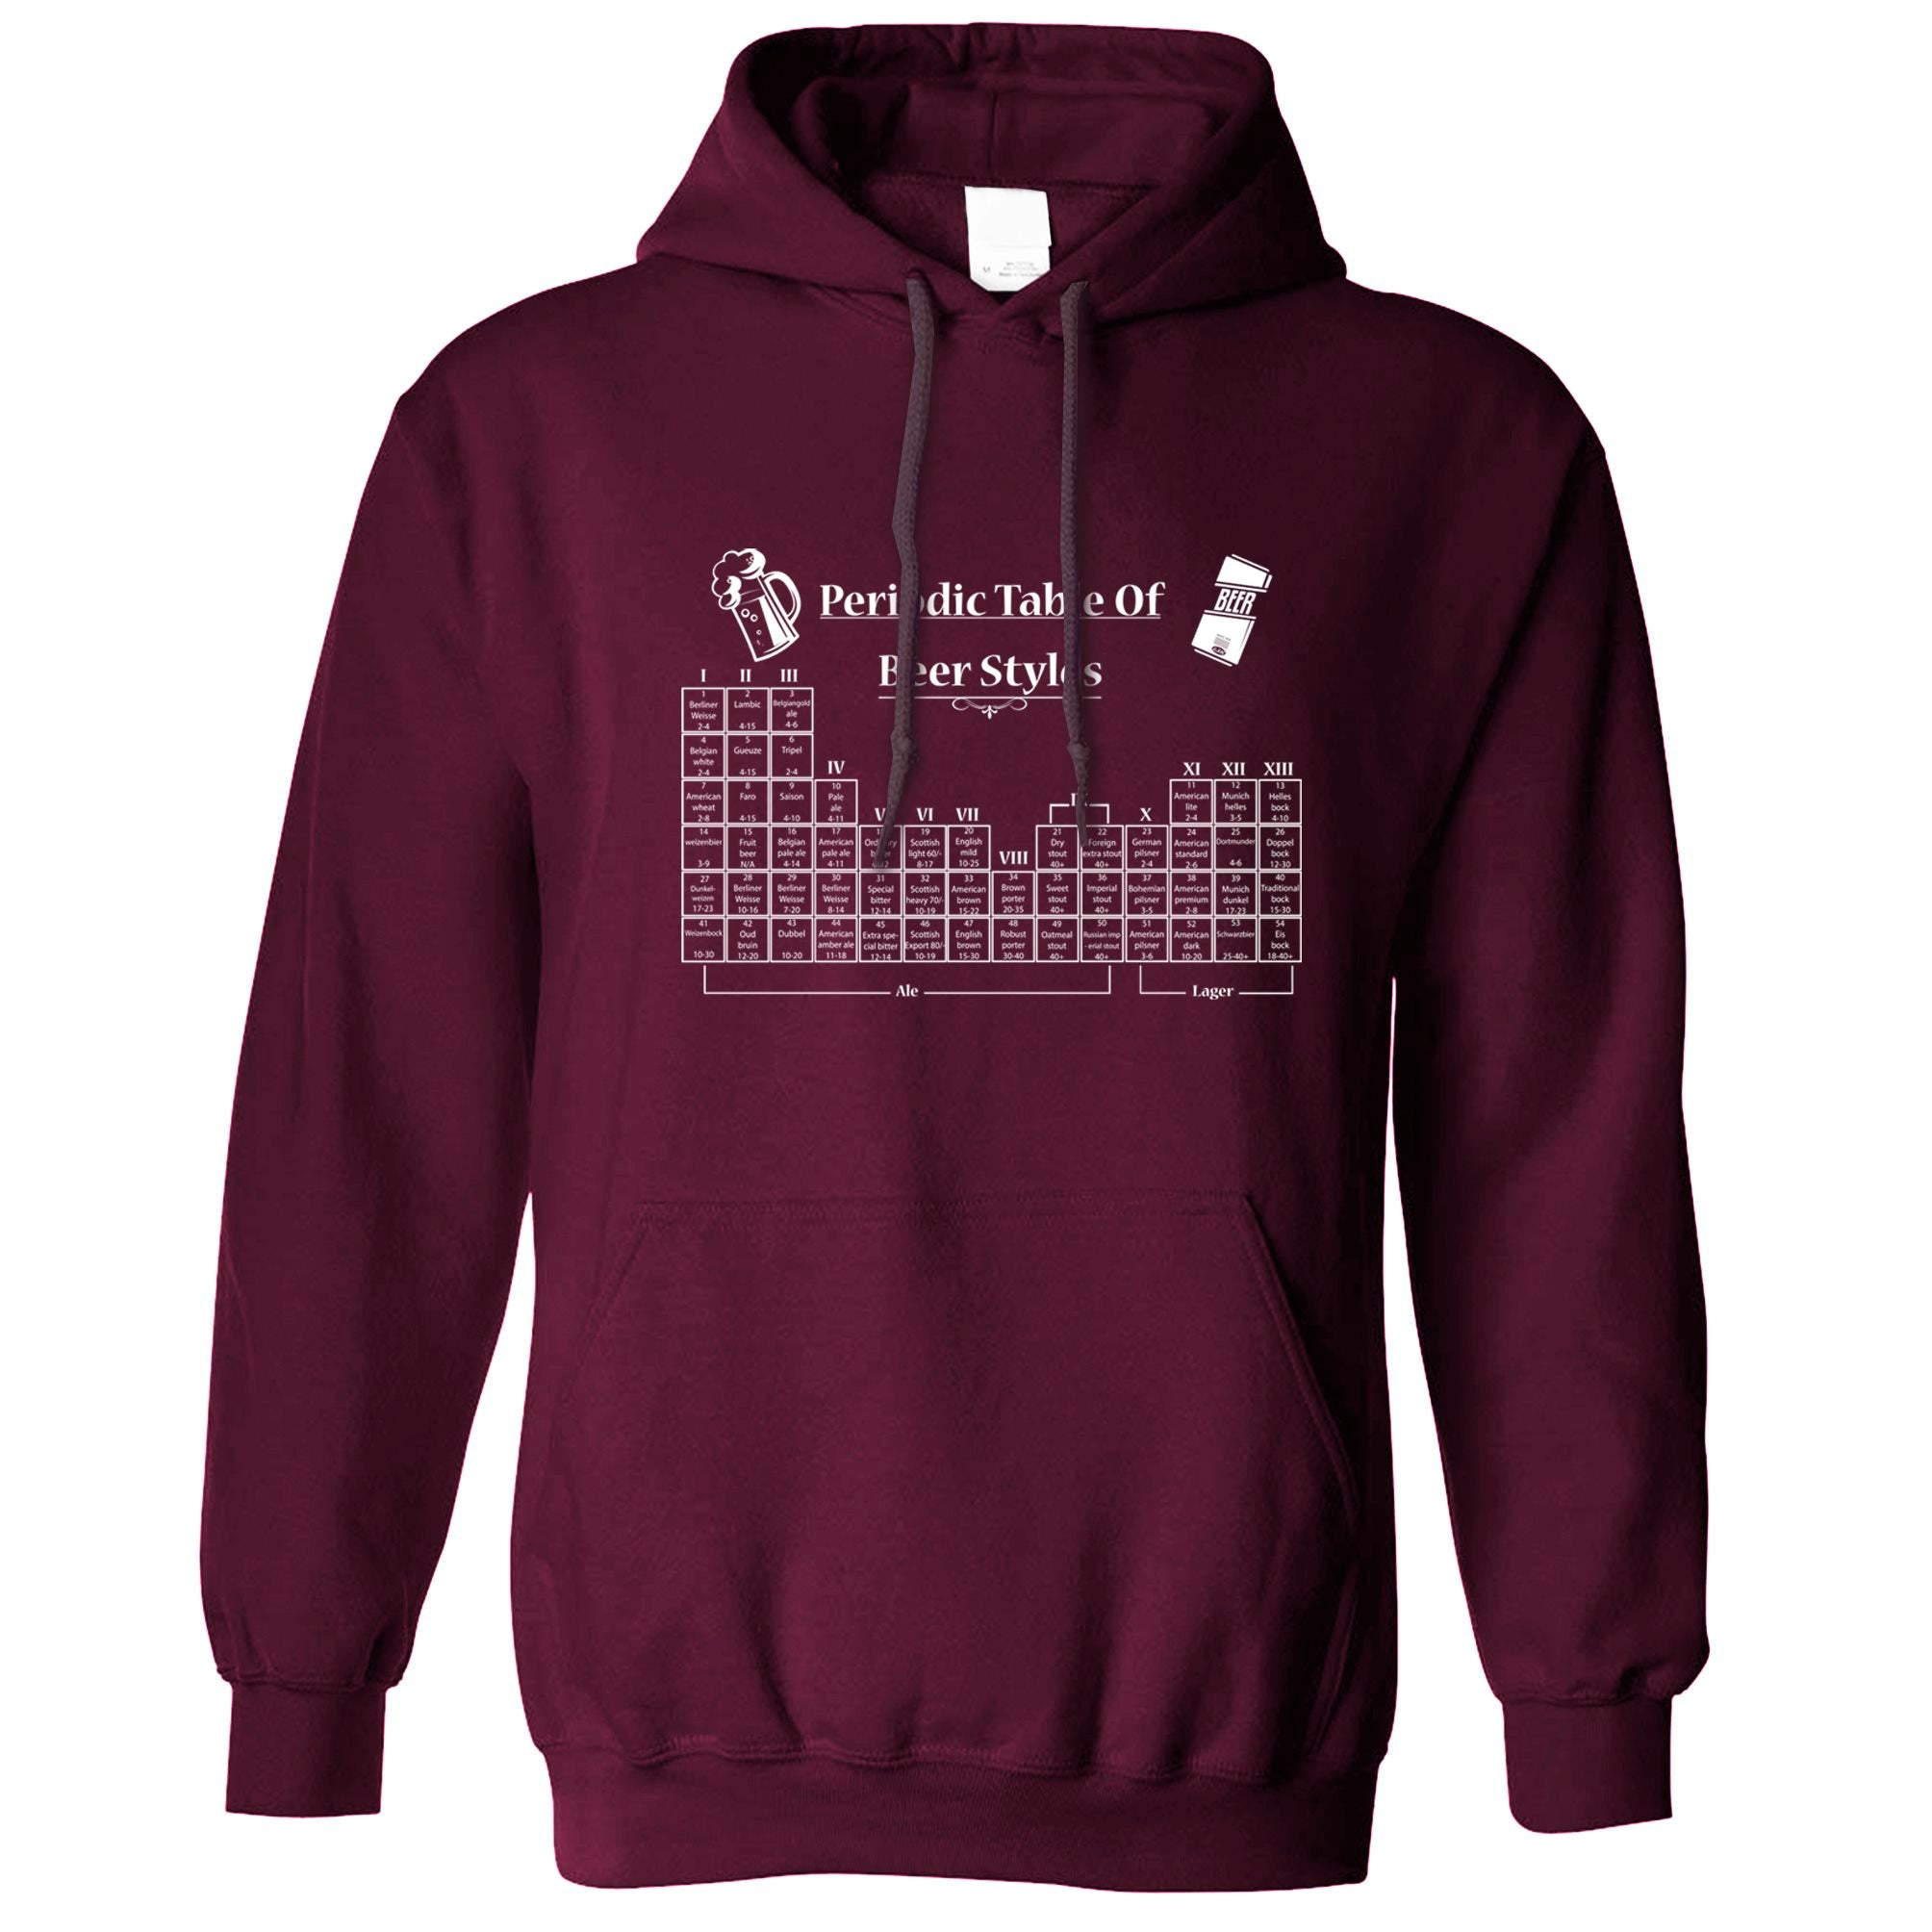 Particle Physics Hoodie Higgs Boson Discovery Art Hooded Jumper